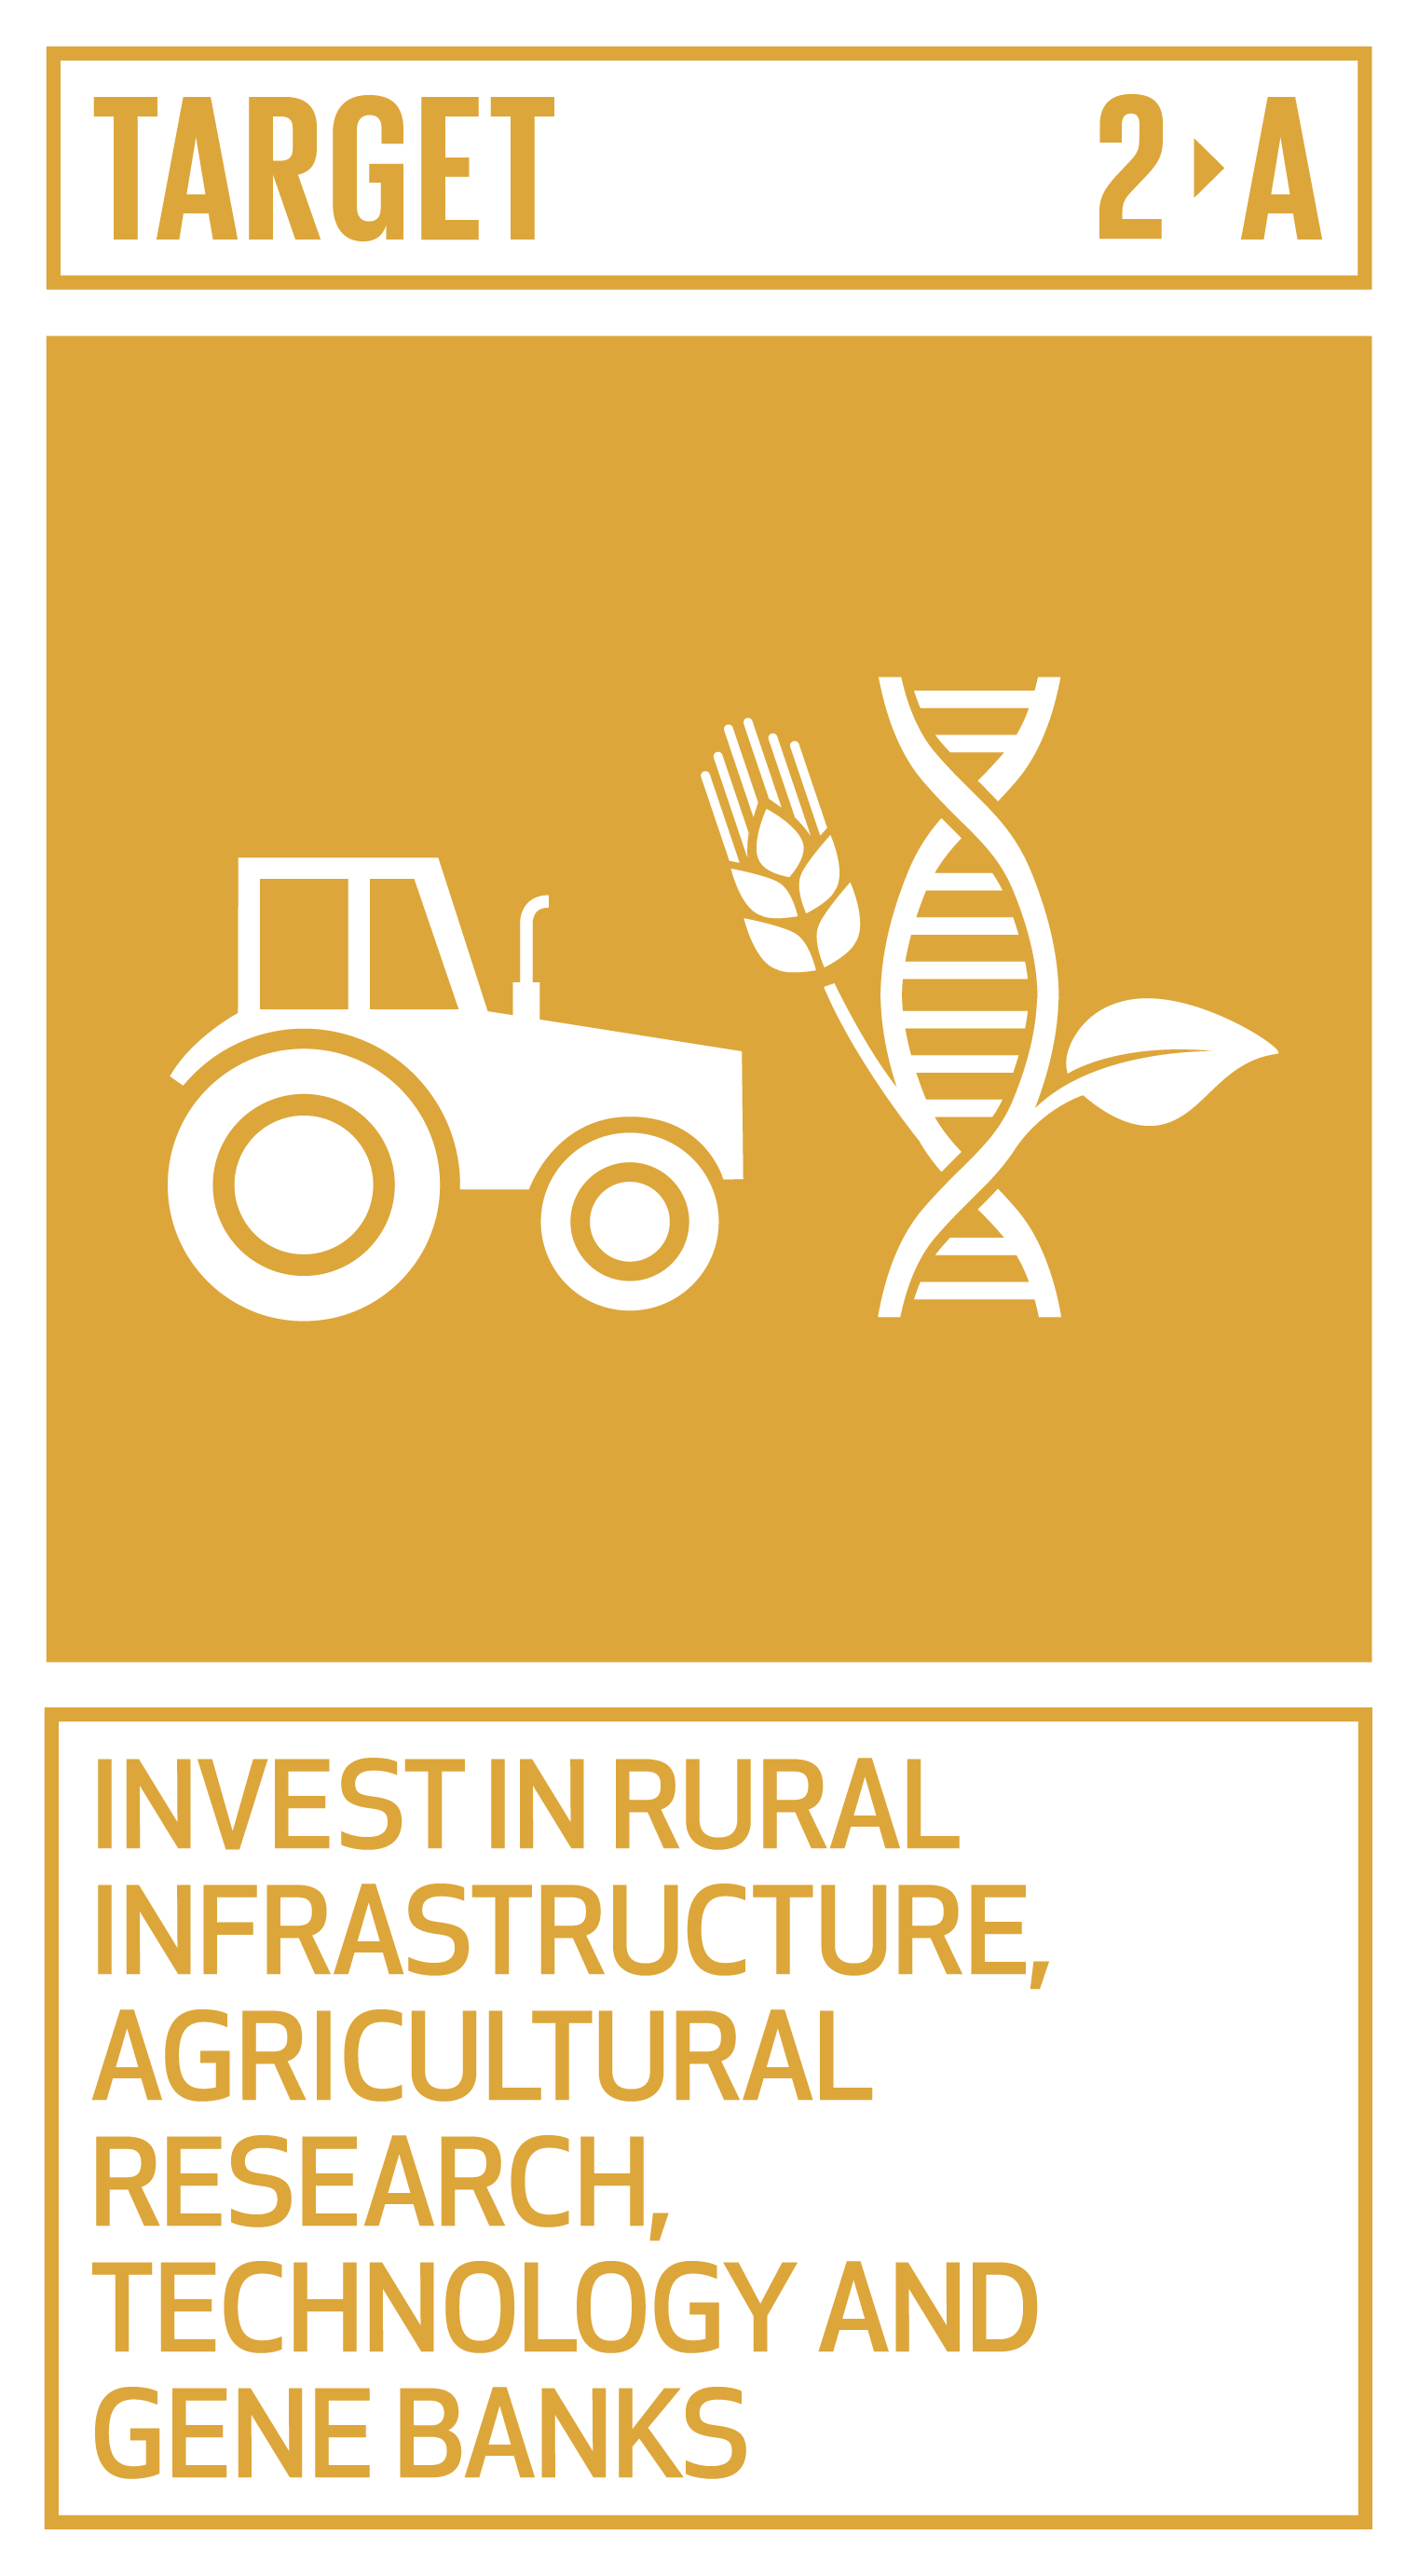 Increase investment, including through enhanced international cooperation, in rural infrastructure, agricultural research and extension services, technology development and plant and livestock gene banks in order to enhance agricultural productive capacity in developing countries, in particular least developed countries.   INDICATORS    2.a.1  The agriculture orientation index for government expenditures   2.a.2  Total official flows (official development assistance plus other official flows) to the agriculture sector